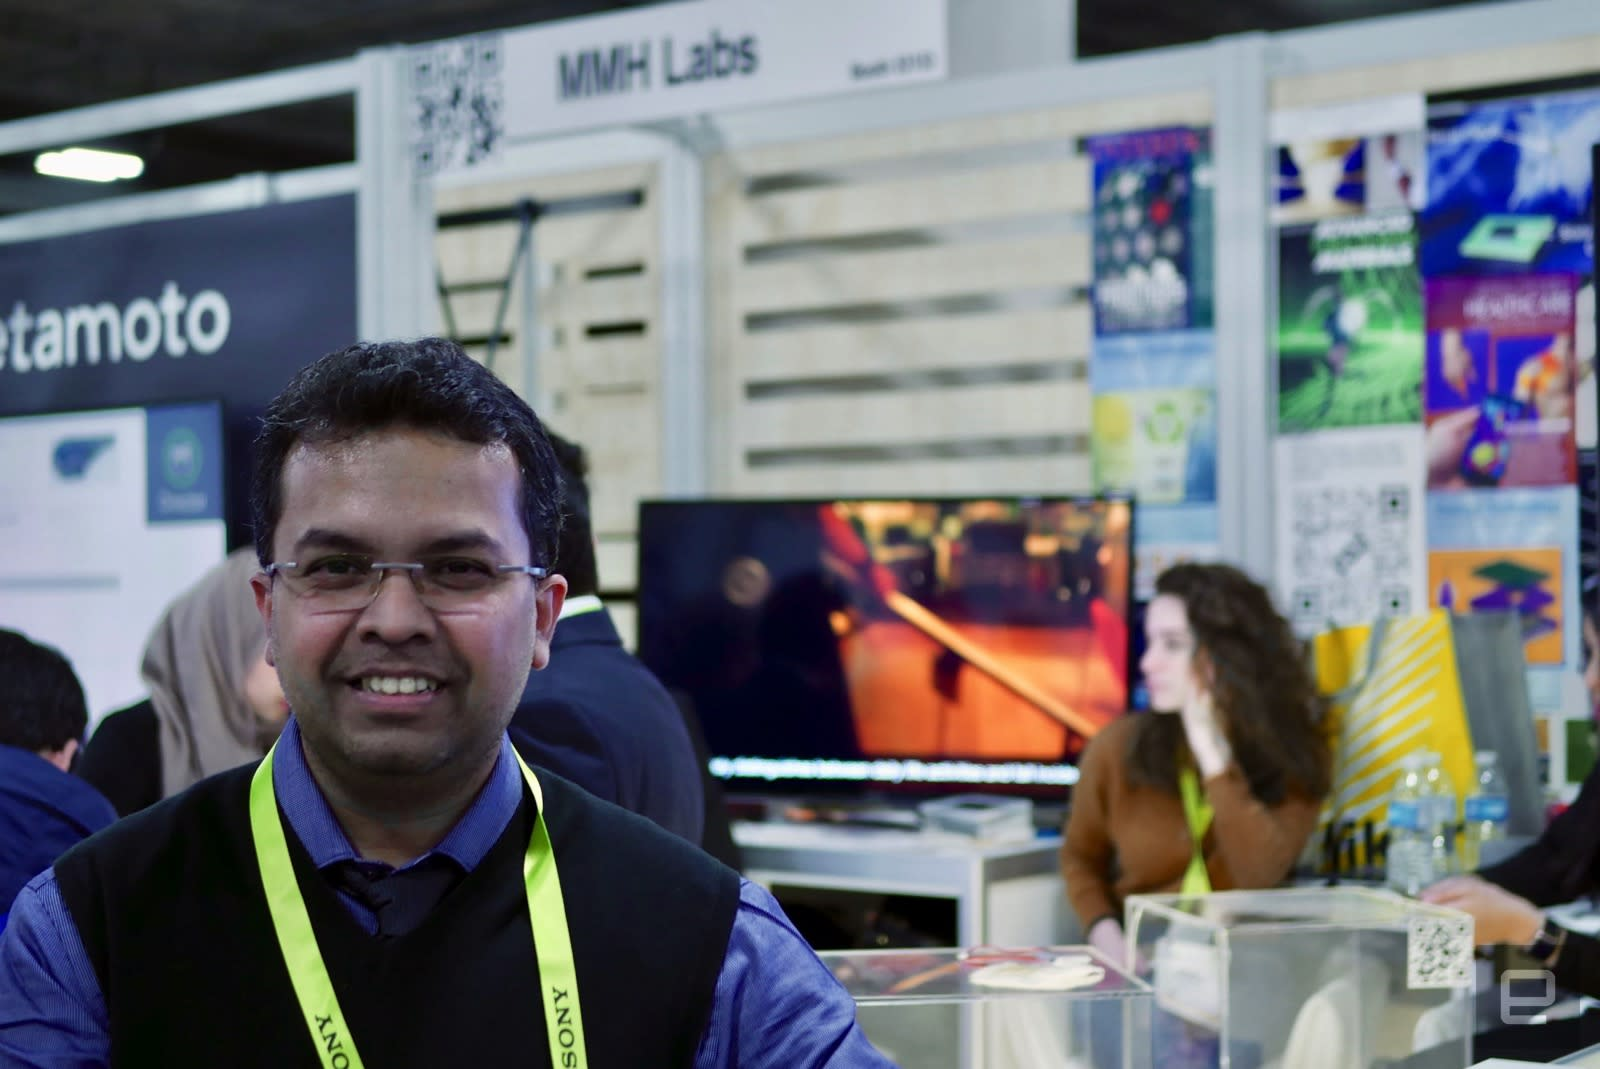 Muhammad Hussain of MMH Labs at CES